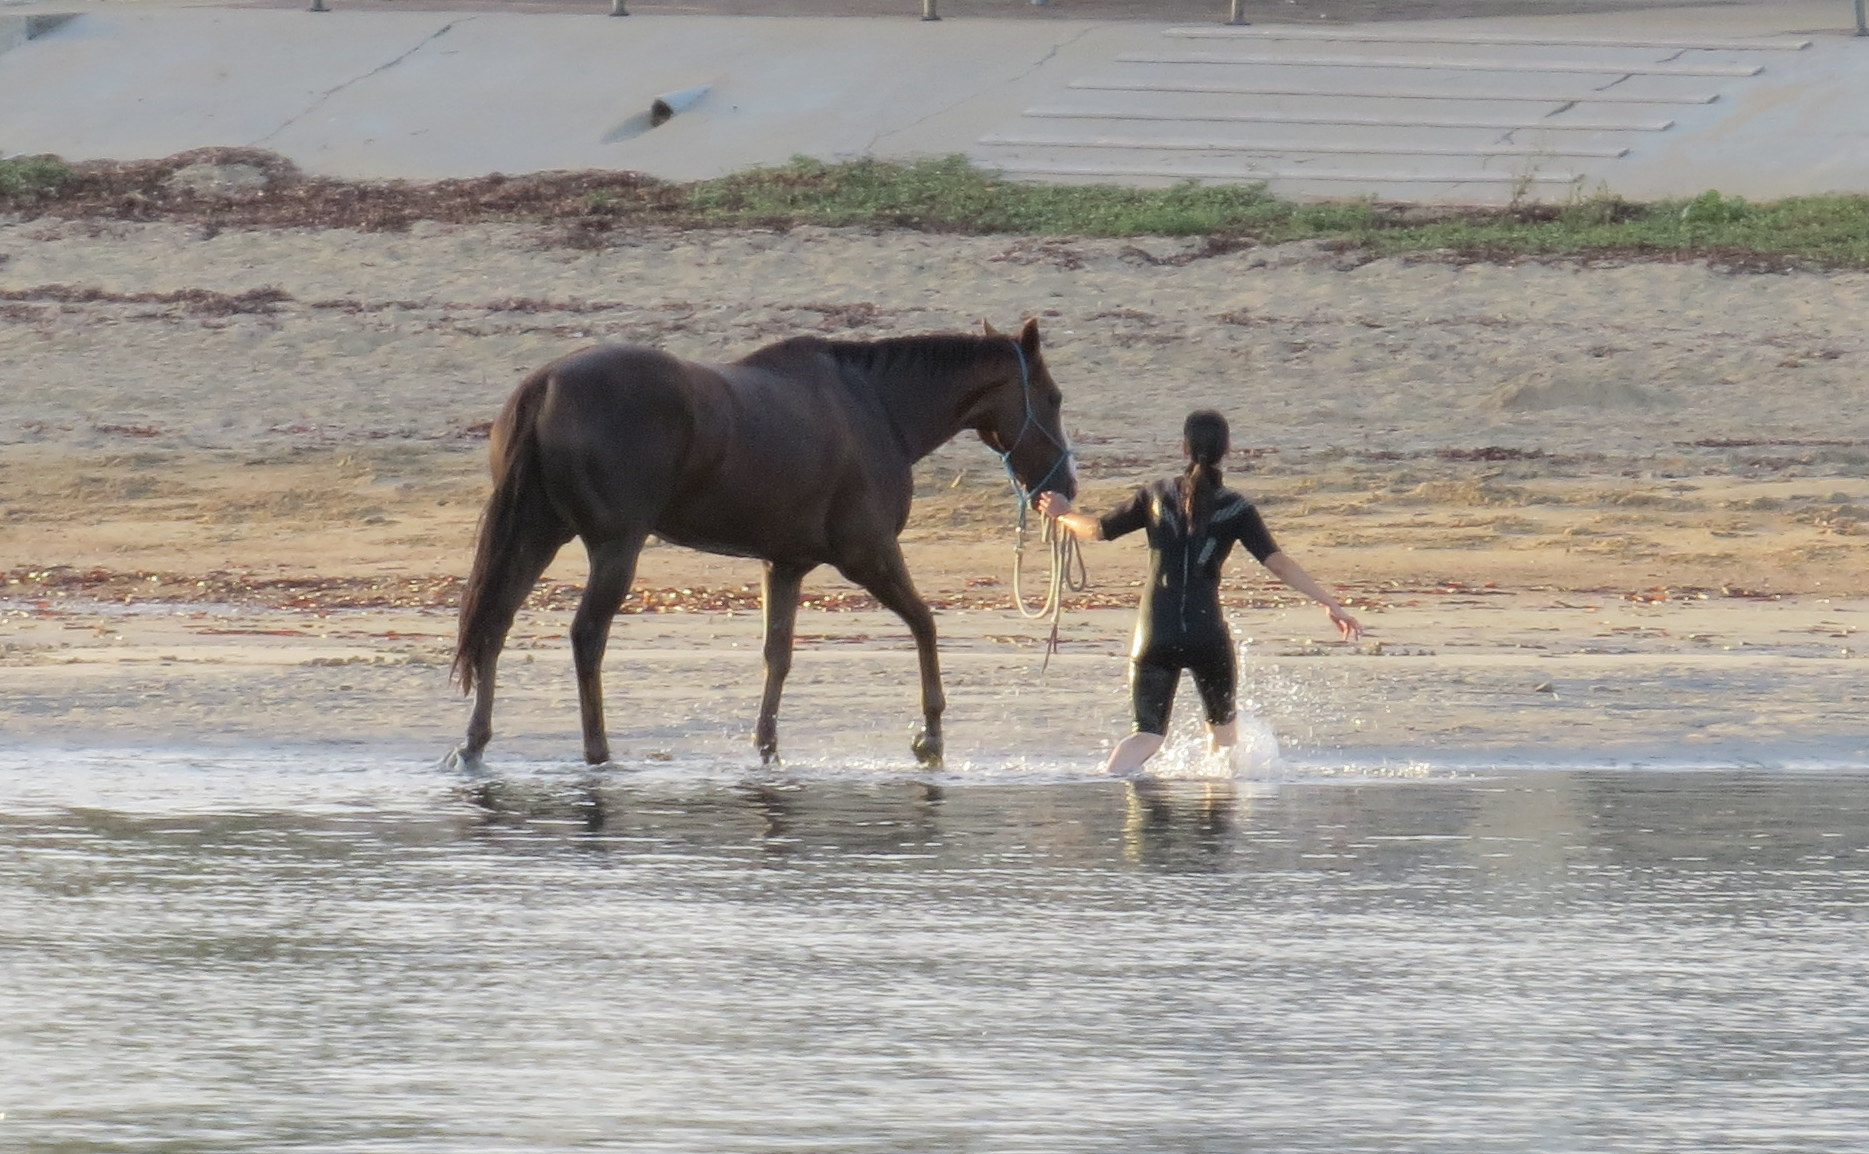 Taking a horse for a walk on the beach in the early morning at Port Lincoln